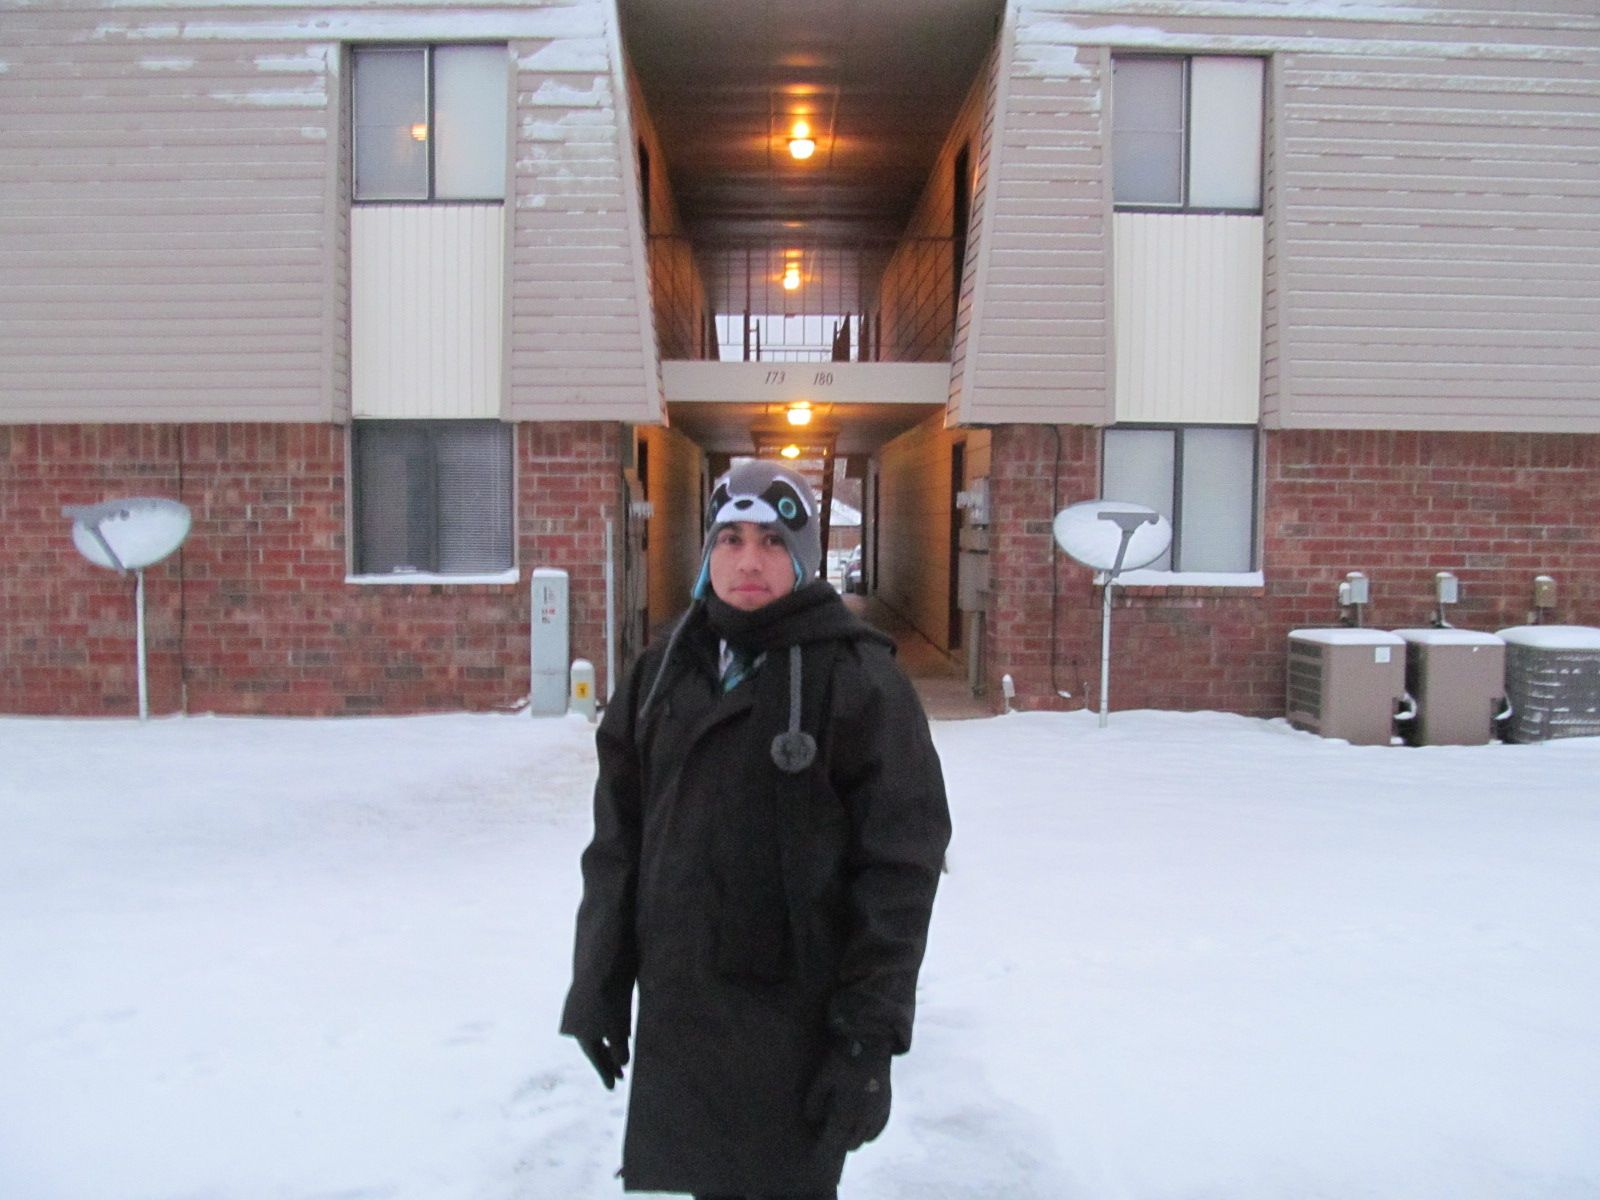 Elder Guzman and his awesome racoon hat. He was very patient with my desire to take a walk, even though it was so cold.